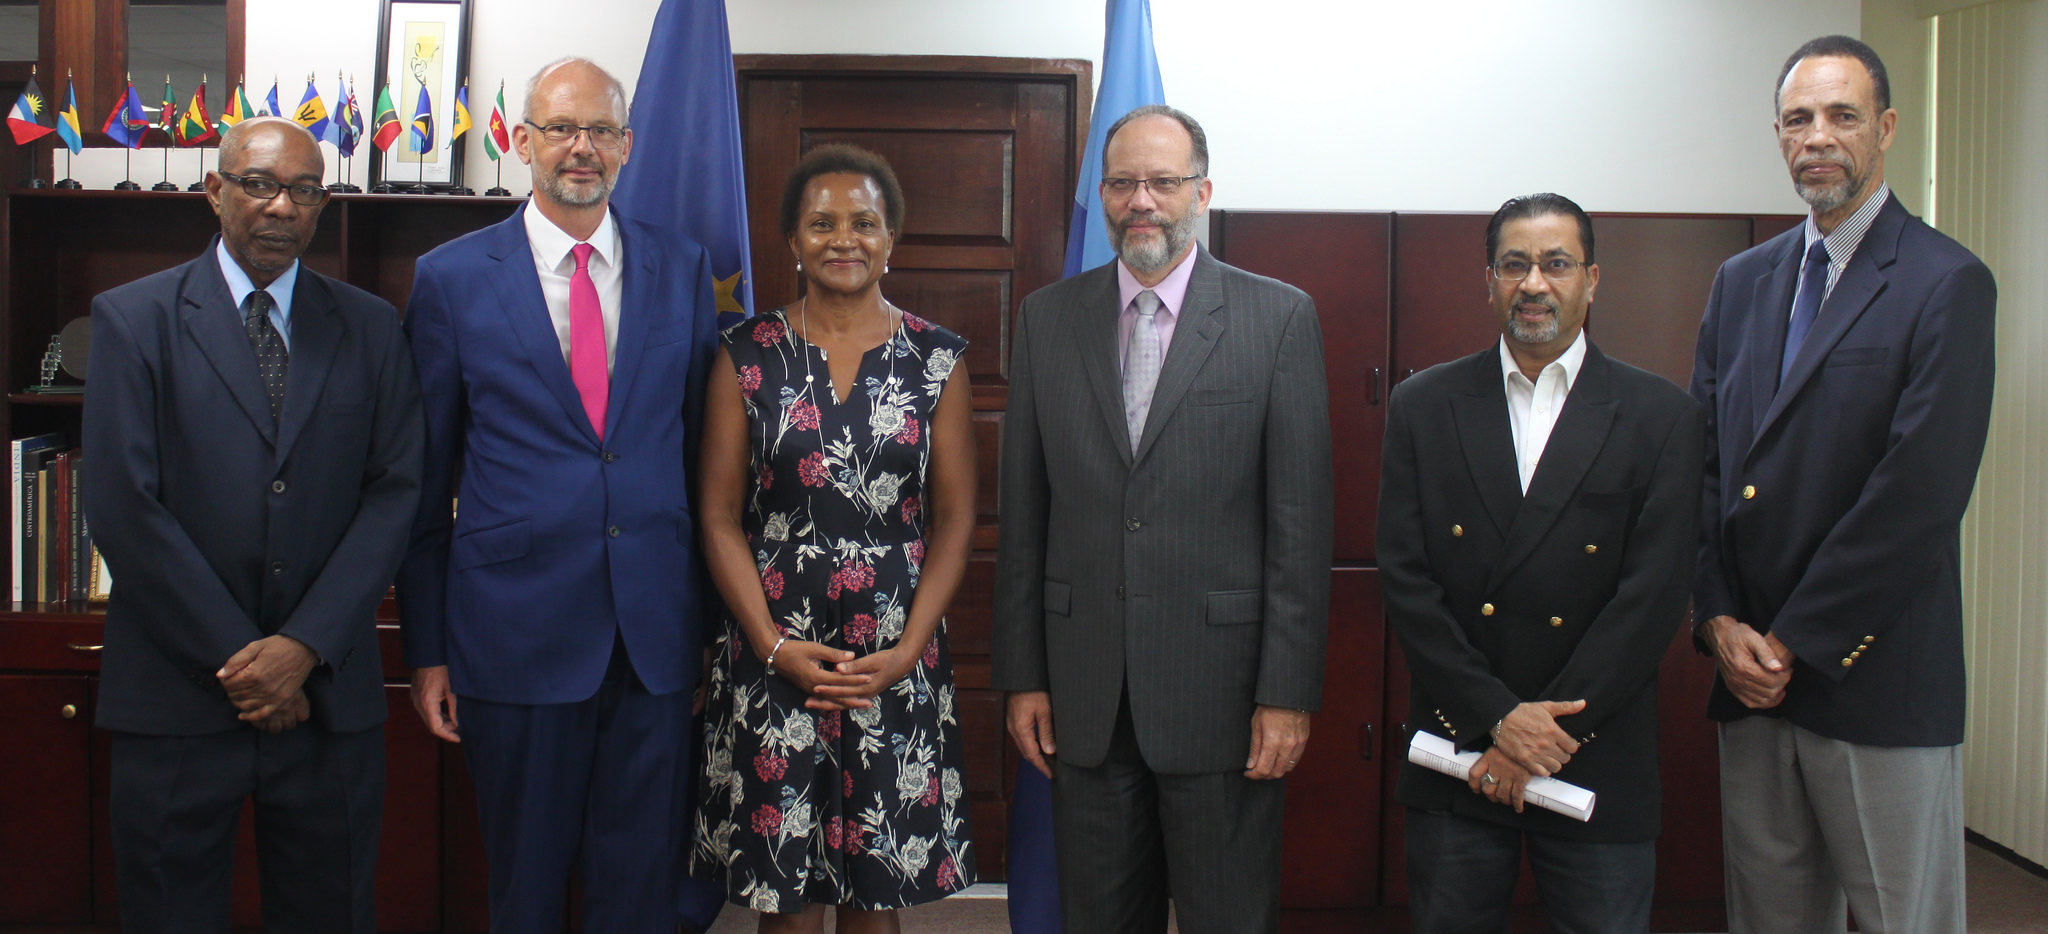 (L-R) Mr. Percival Marie, Director-General, CARIFORUM; His Excellency Mikael Barfod; Mrs. Maxia Barfod; Ambassador Irwin LaRocque, Secretary-General, Caribbean Community (CARICOM); Mr. Neville Bissember, Advisor, Office of the Secretary-General; and